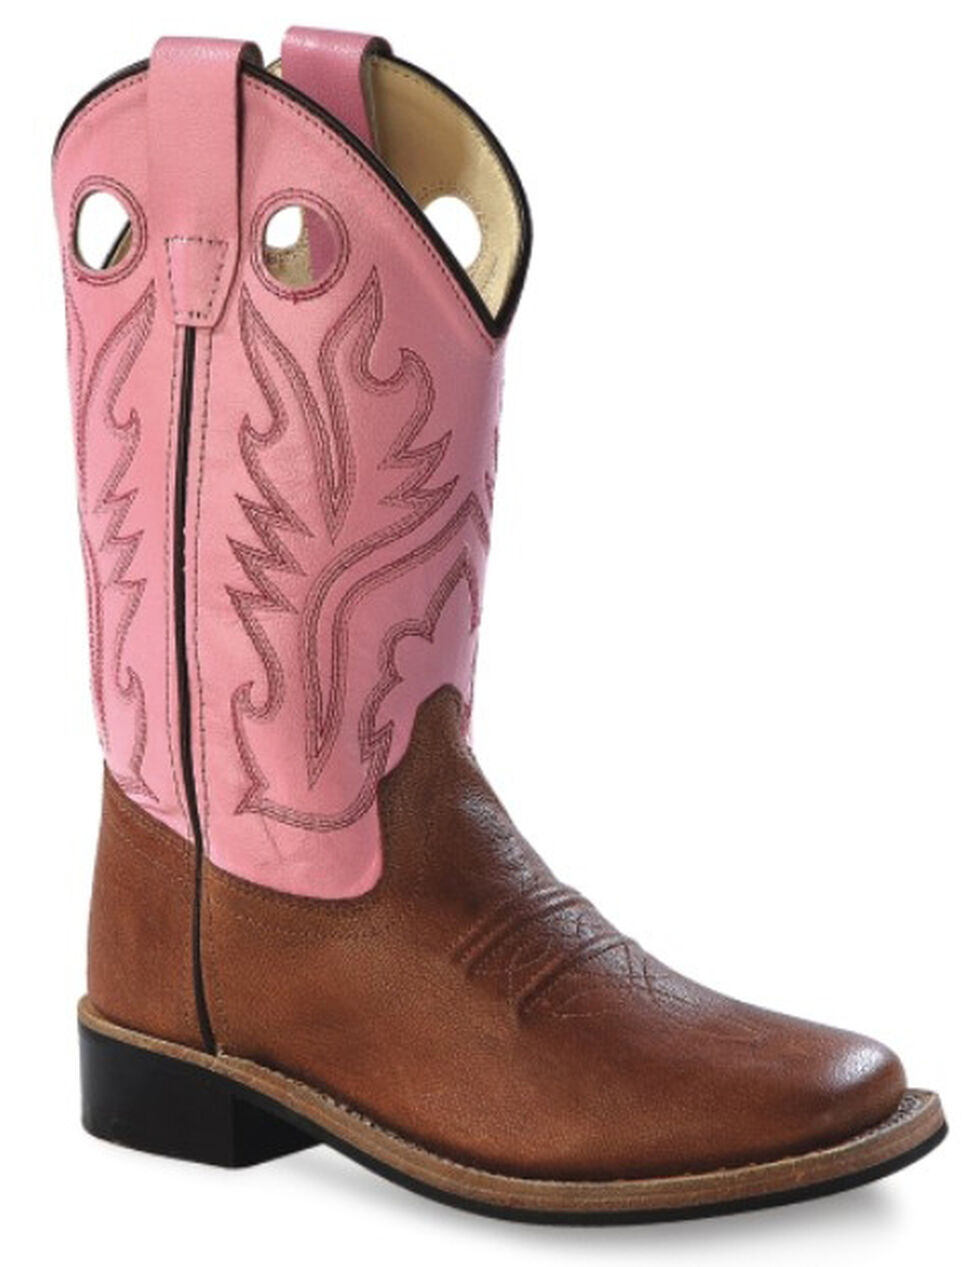 Old West Youth Girls' Pink Canyon Cowgirl Boots, Tan, hi-res